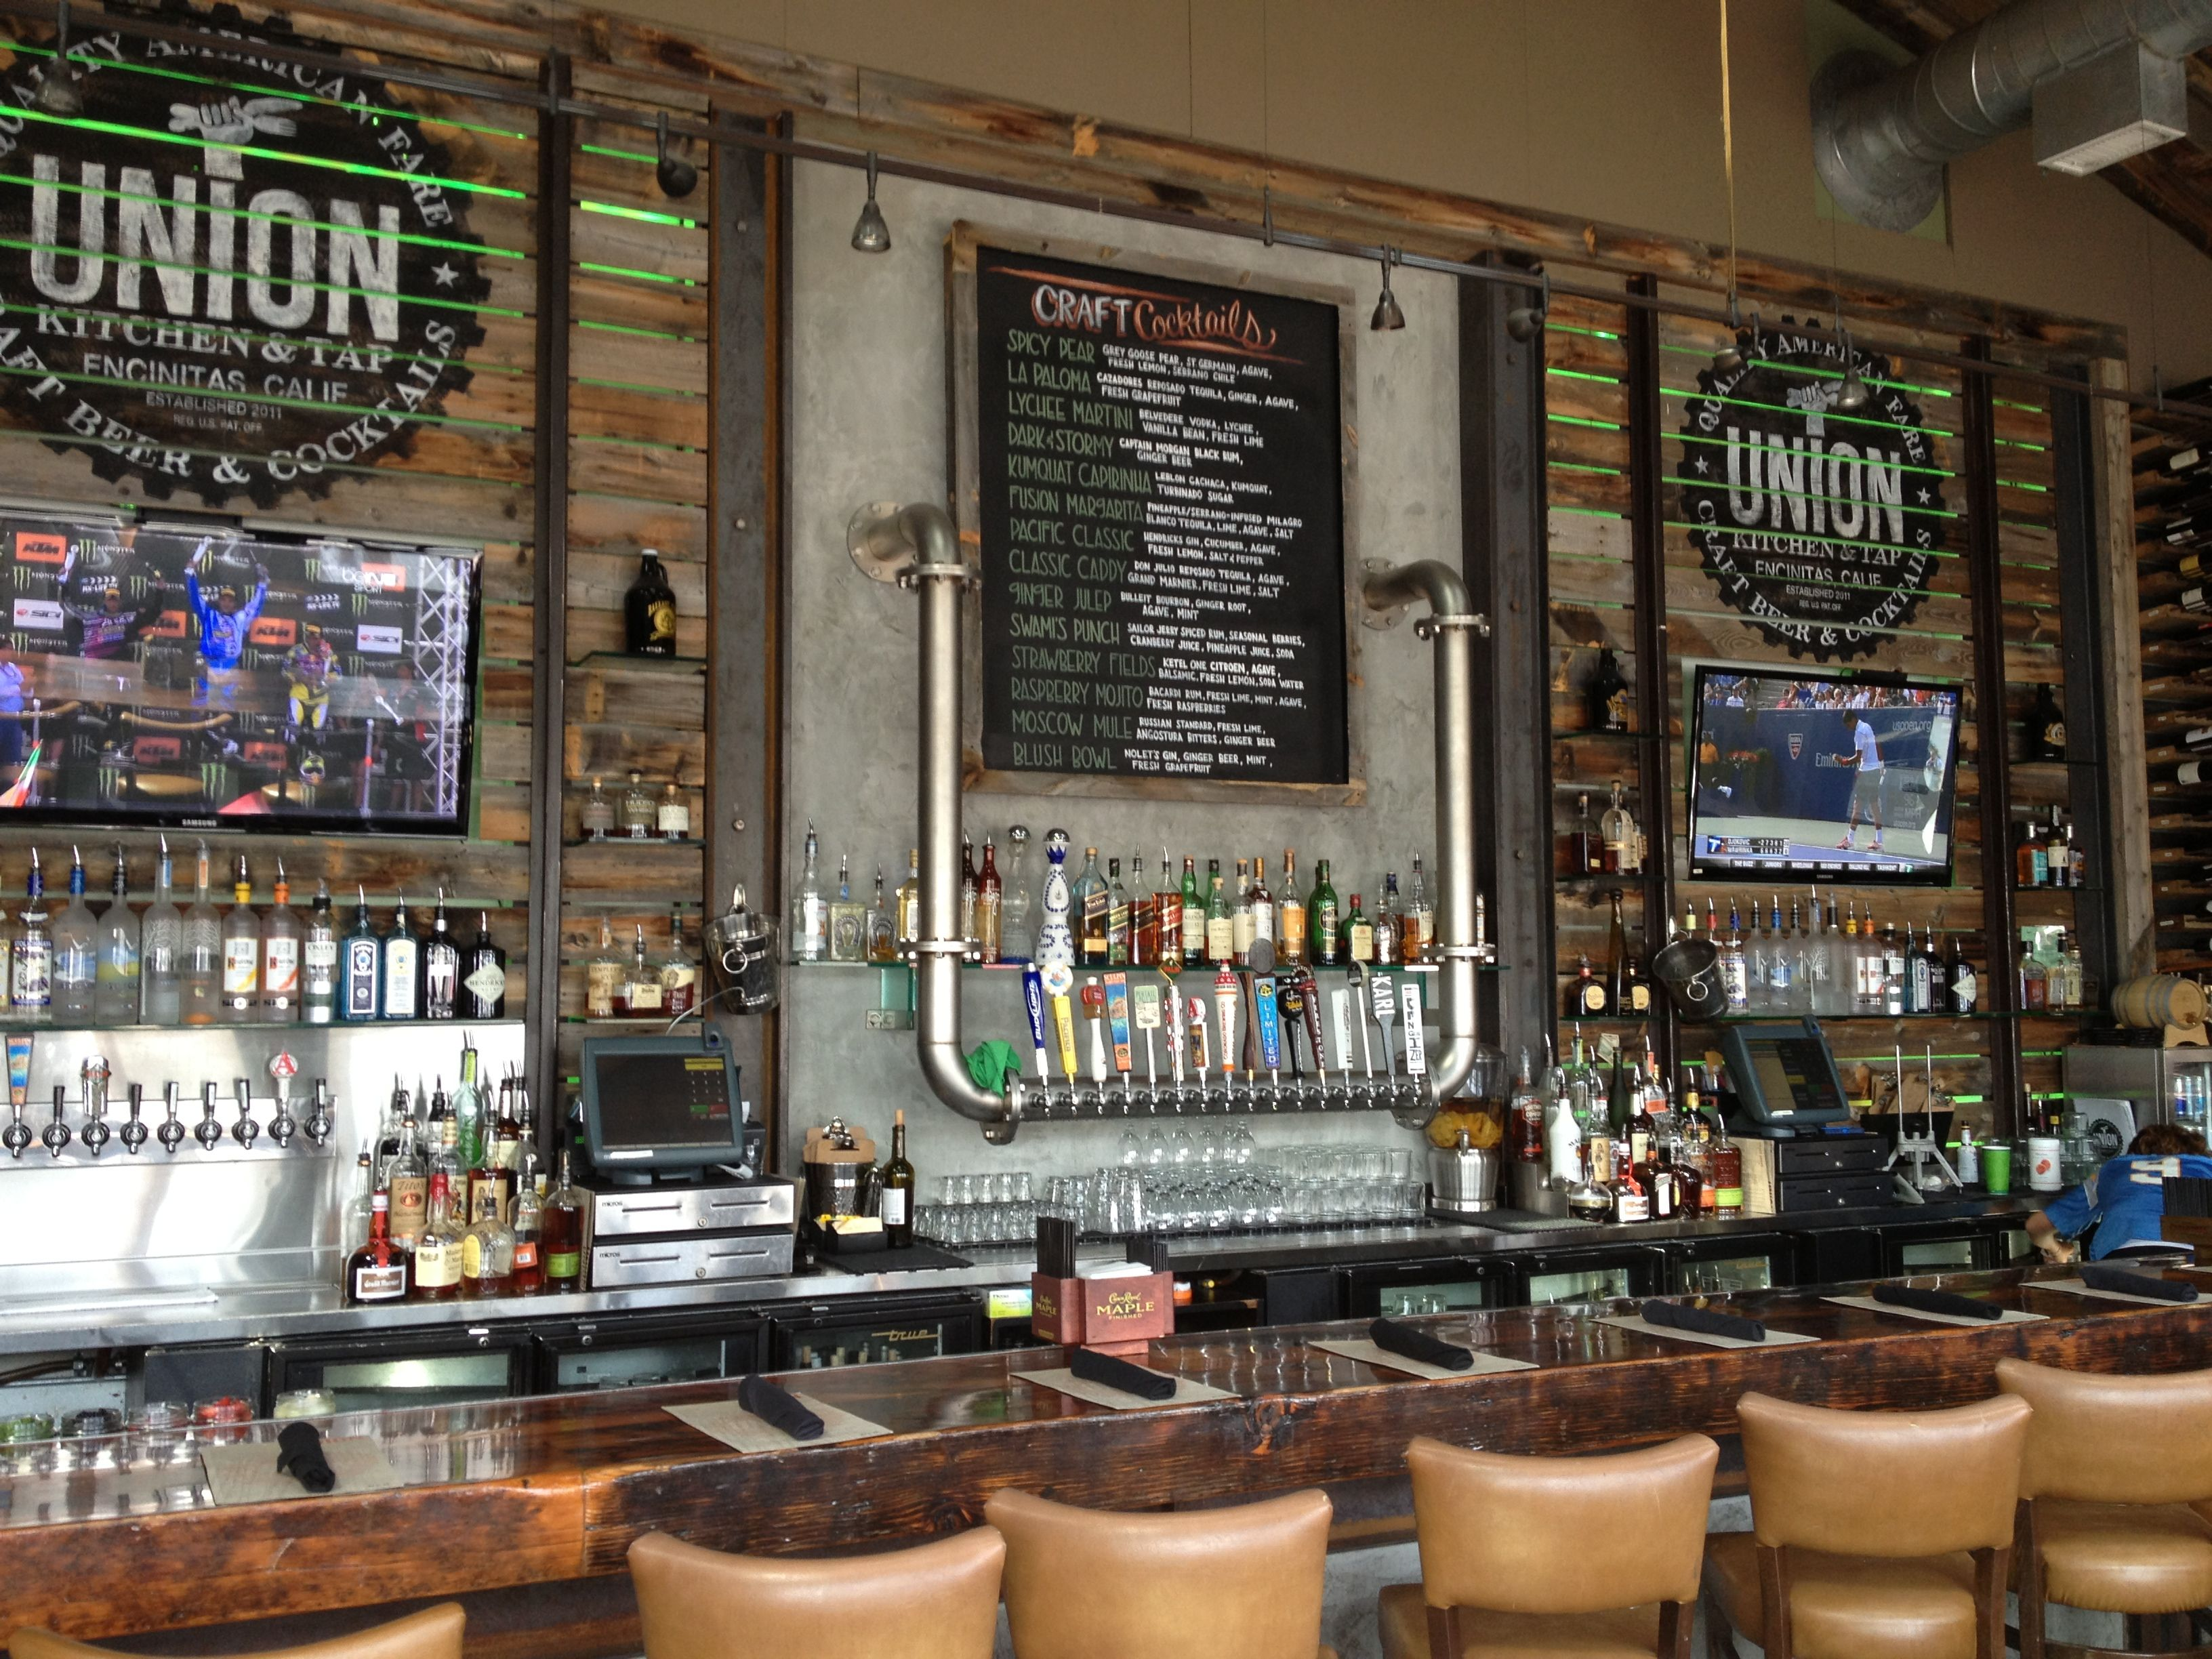 Union bar in encinitas great bar design client for Decor systems